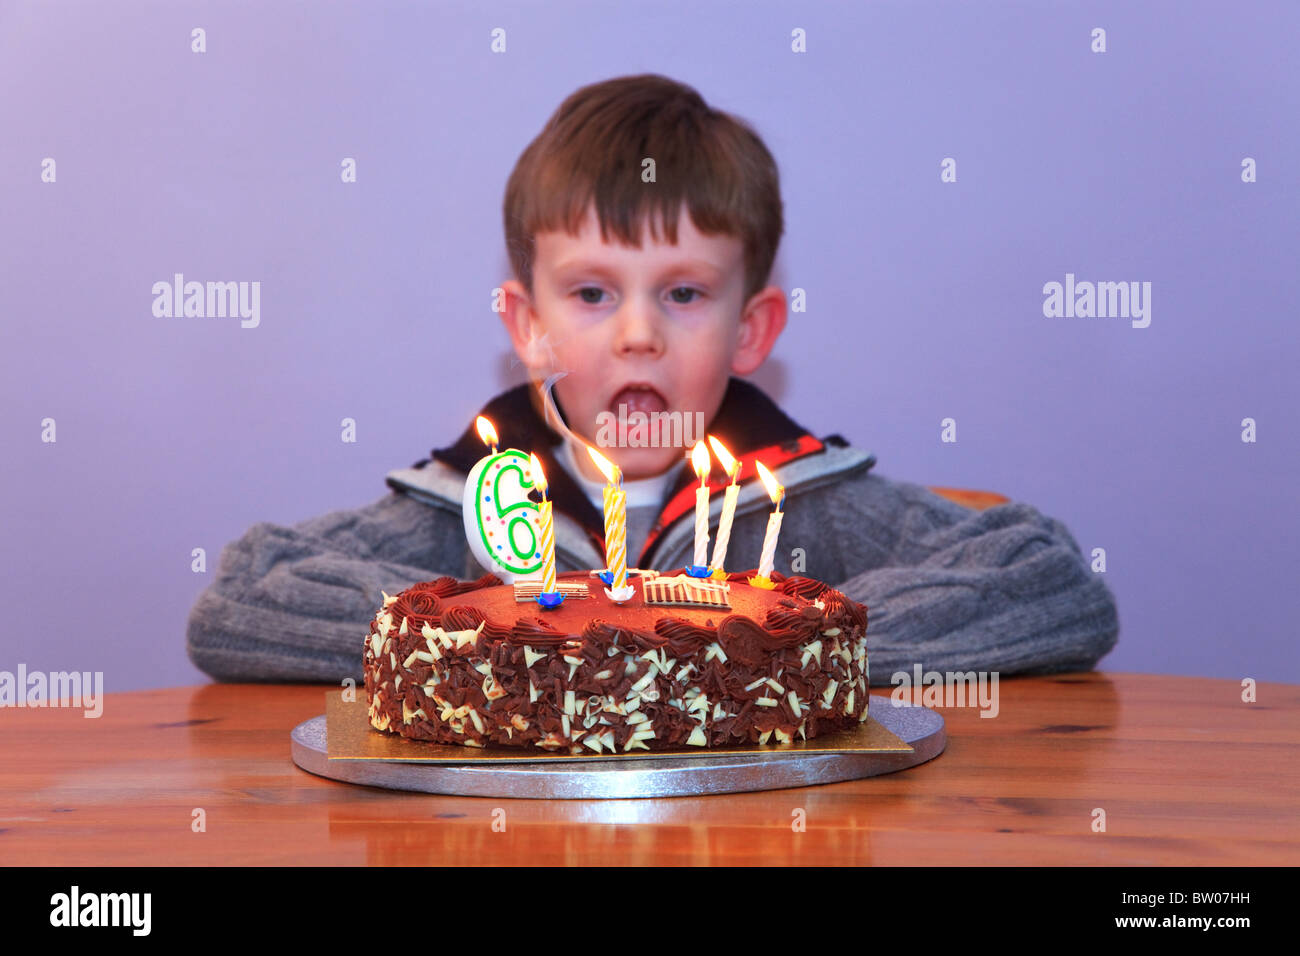 A 6 year old boy looking at the candles on his birthday cake - Stock Image